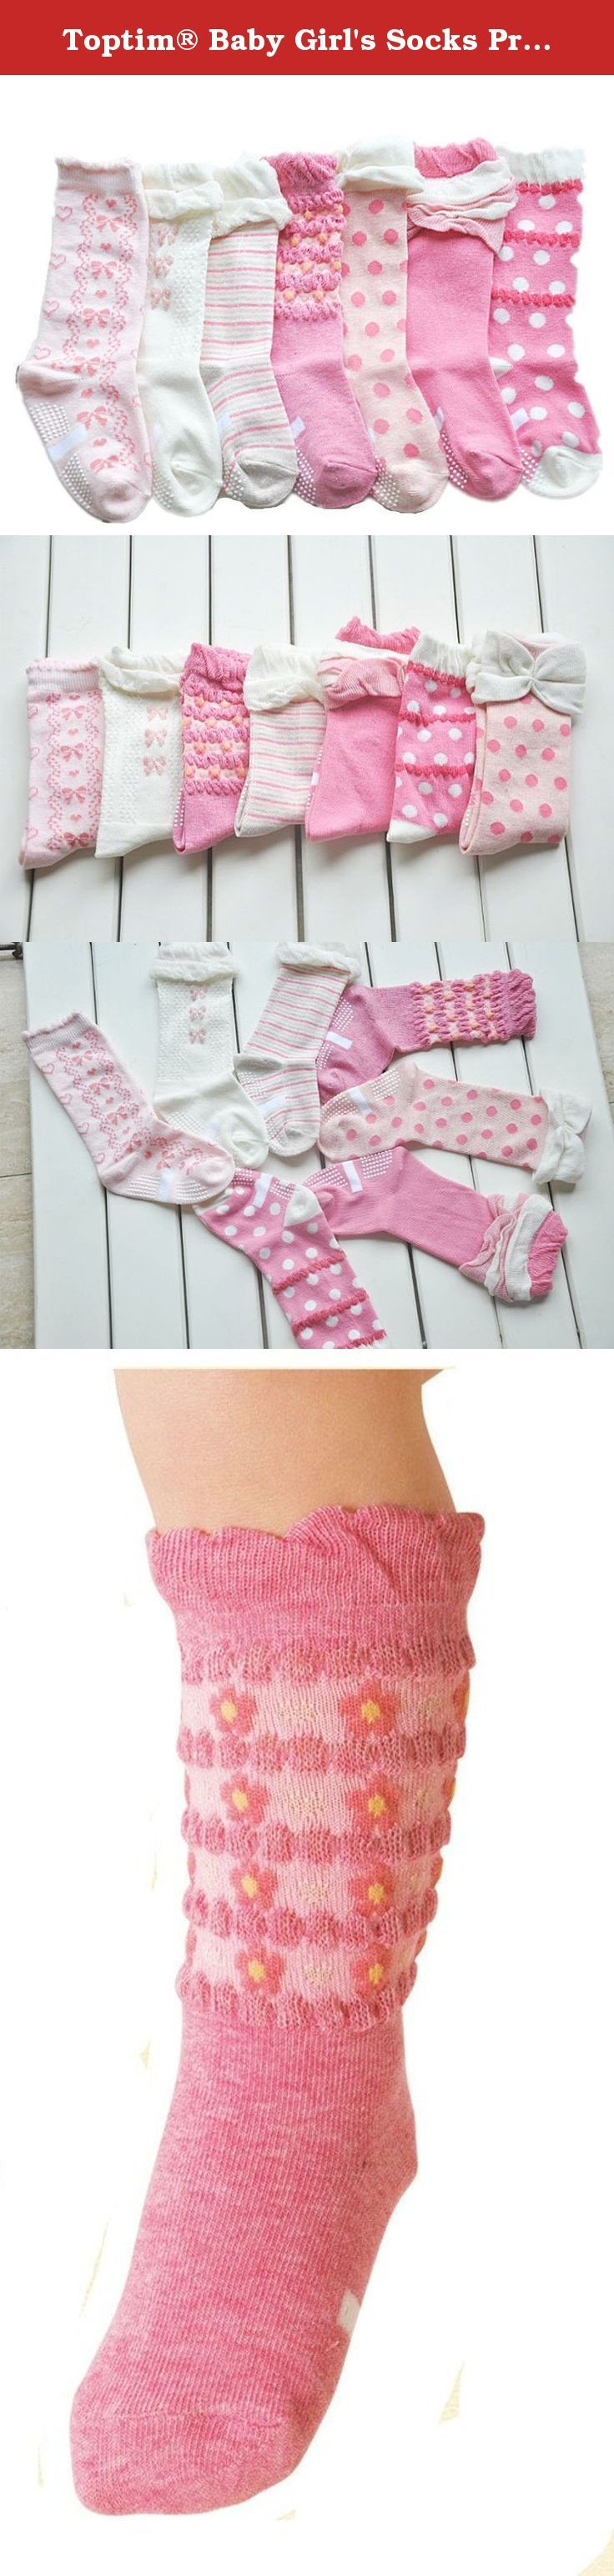 Toptim® Baby Girl's Socks Princess Non-skid Socks for Infants and Toddlers Value Pack (7 Pairs Pink). Made out of 85% cotton, 15% spandex Mixed 7 Colors a set Innovative socks for young children. These socks are lined on the bottom with a rubberized pattern of floor gripping dots that makes it easy to walk around the house wearing only the socks. Gripping soles lets your kids wear the socks around the house without your having to worry about them slipping and falling.